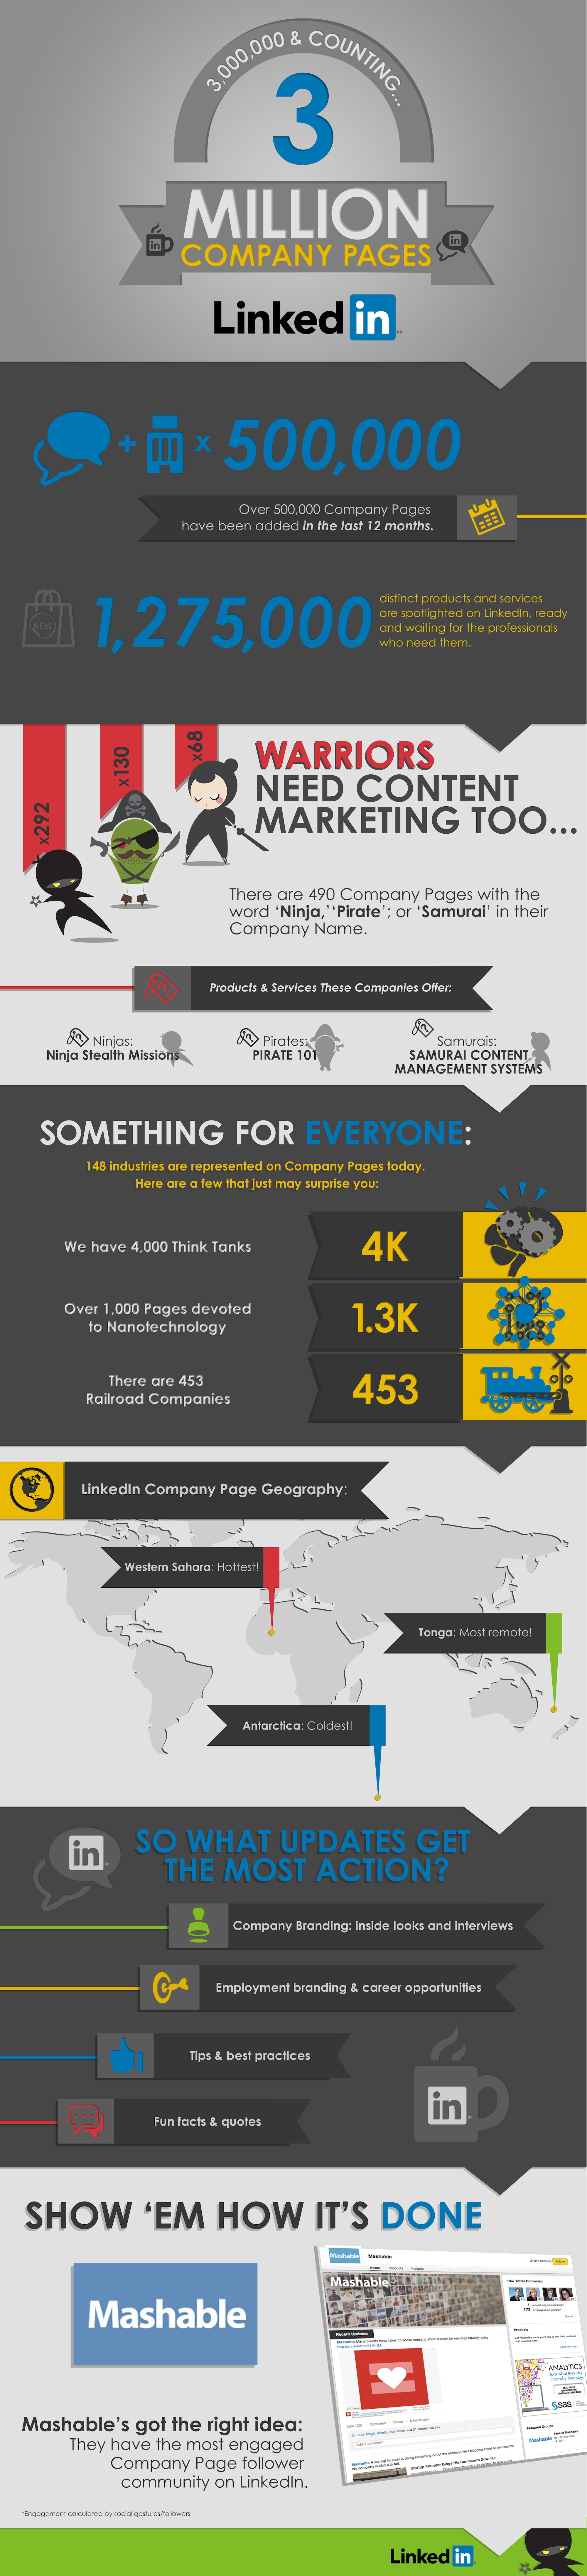 Company-Page-Infographic